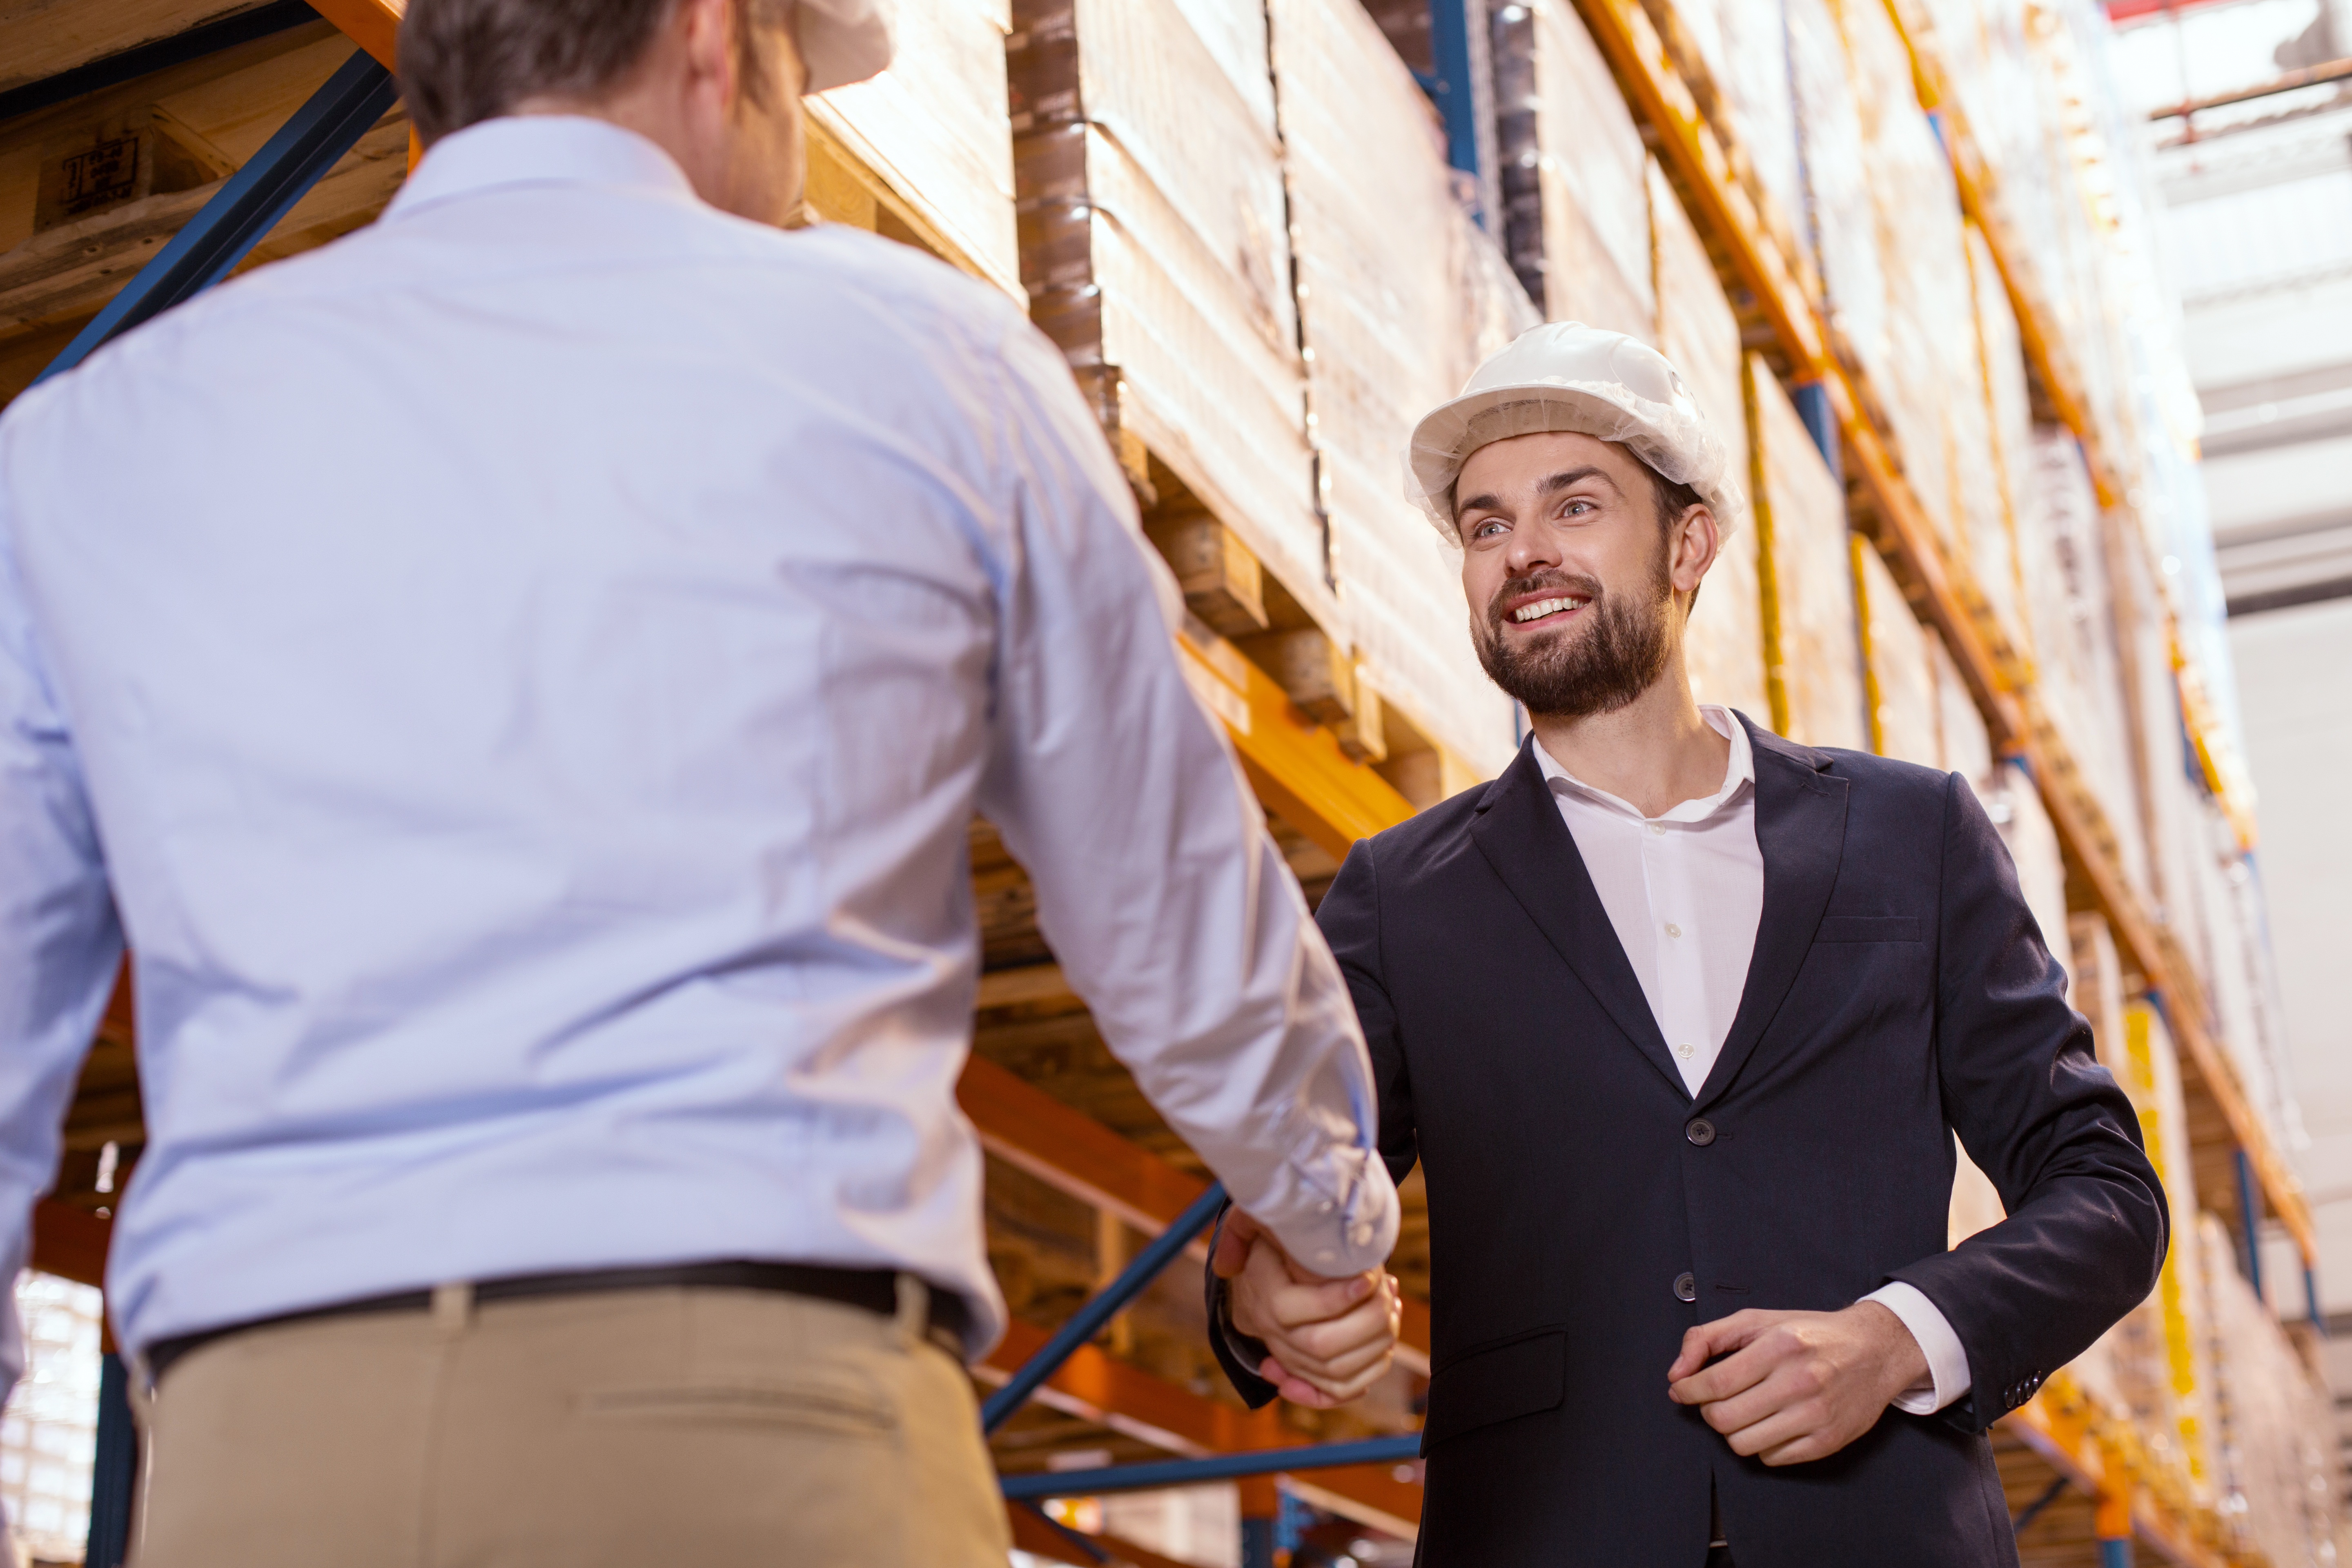 Two businessmen in hard hats standing in warehouse, smiling and shaking hands